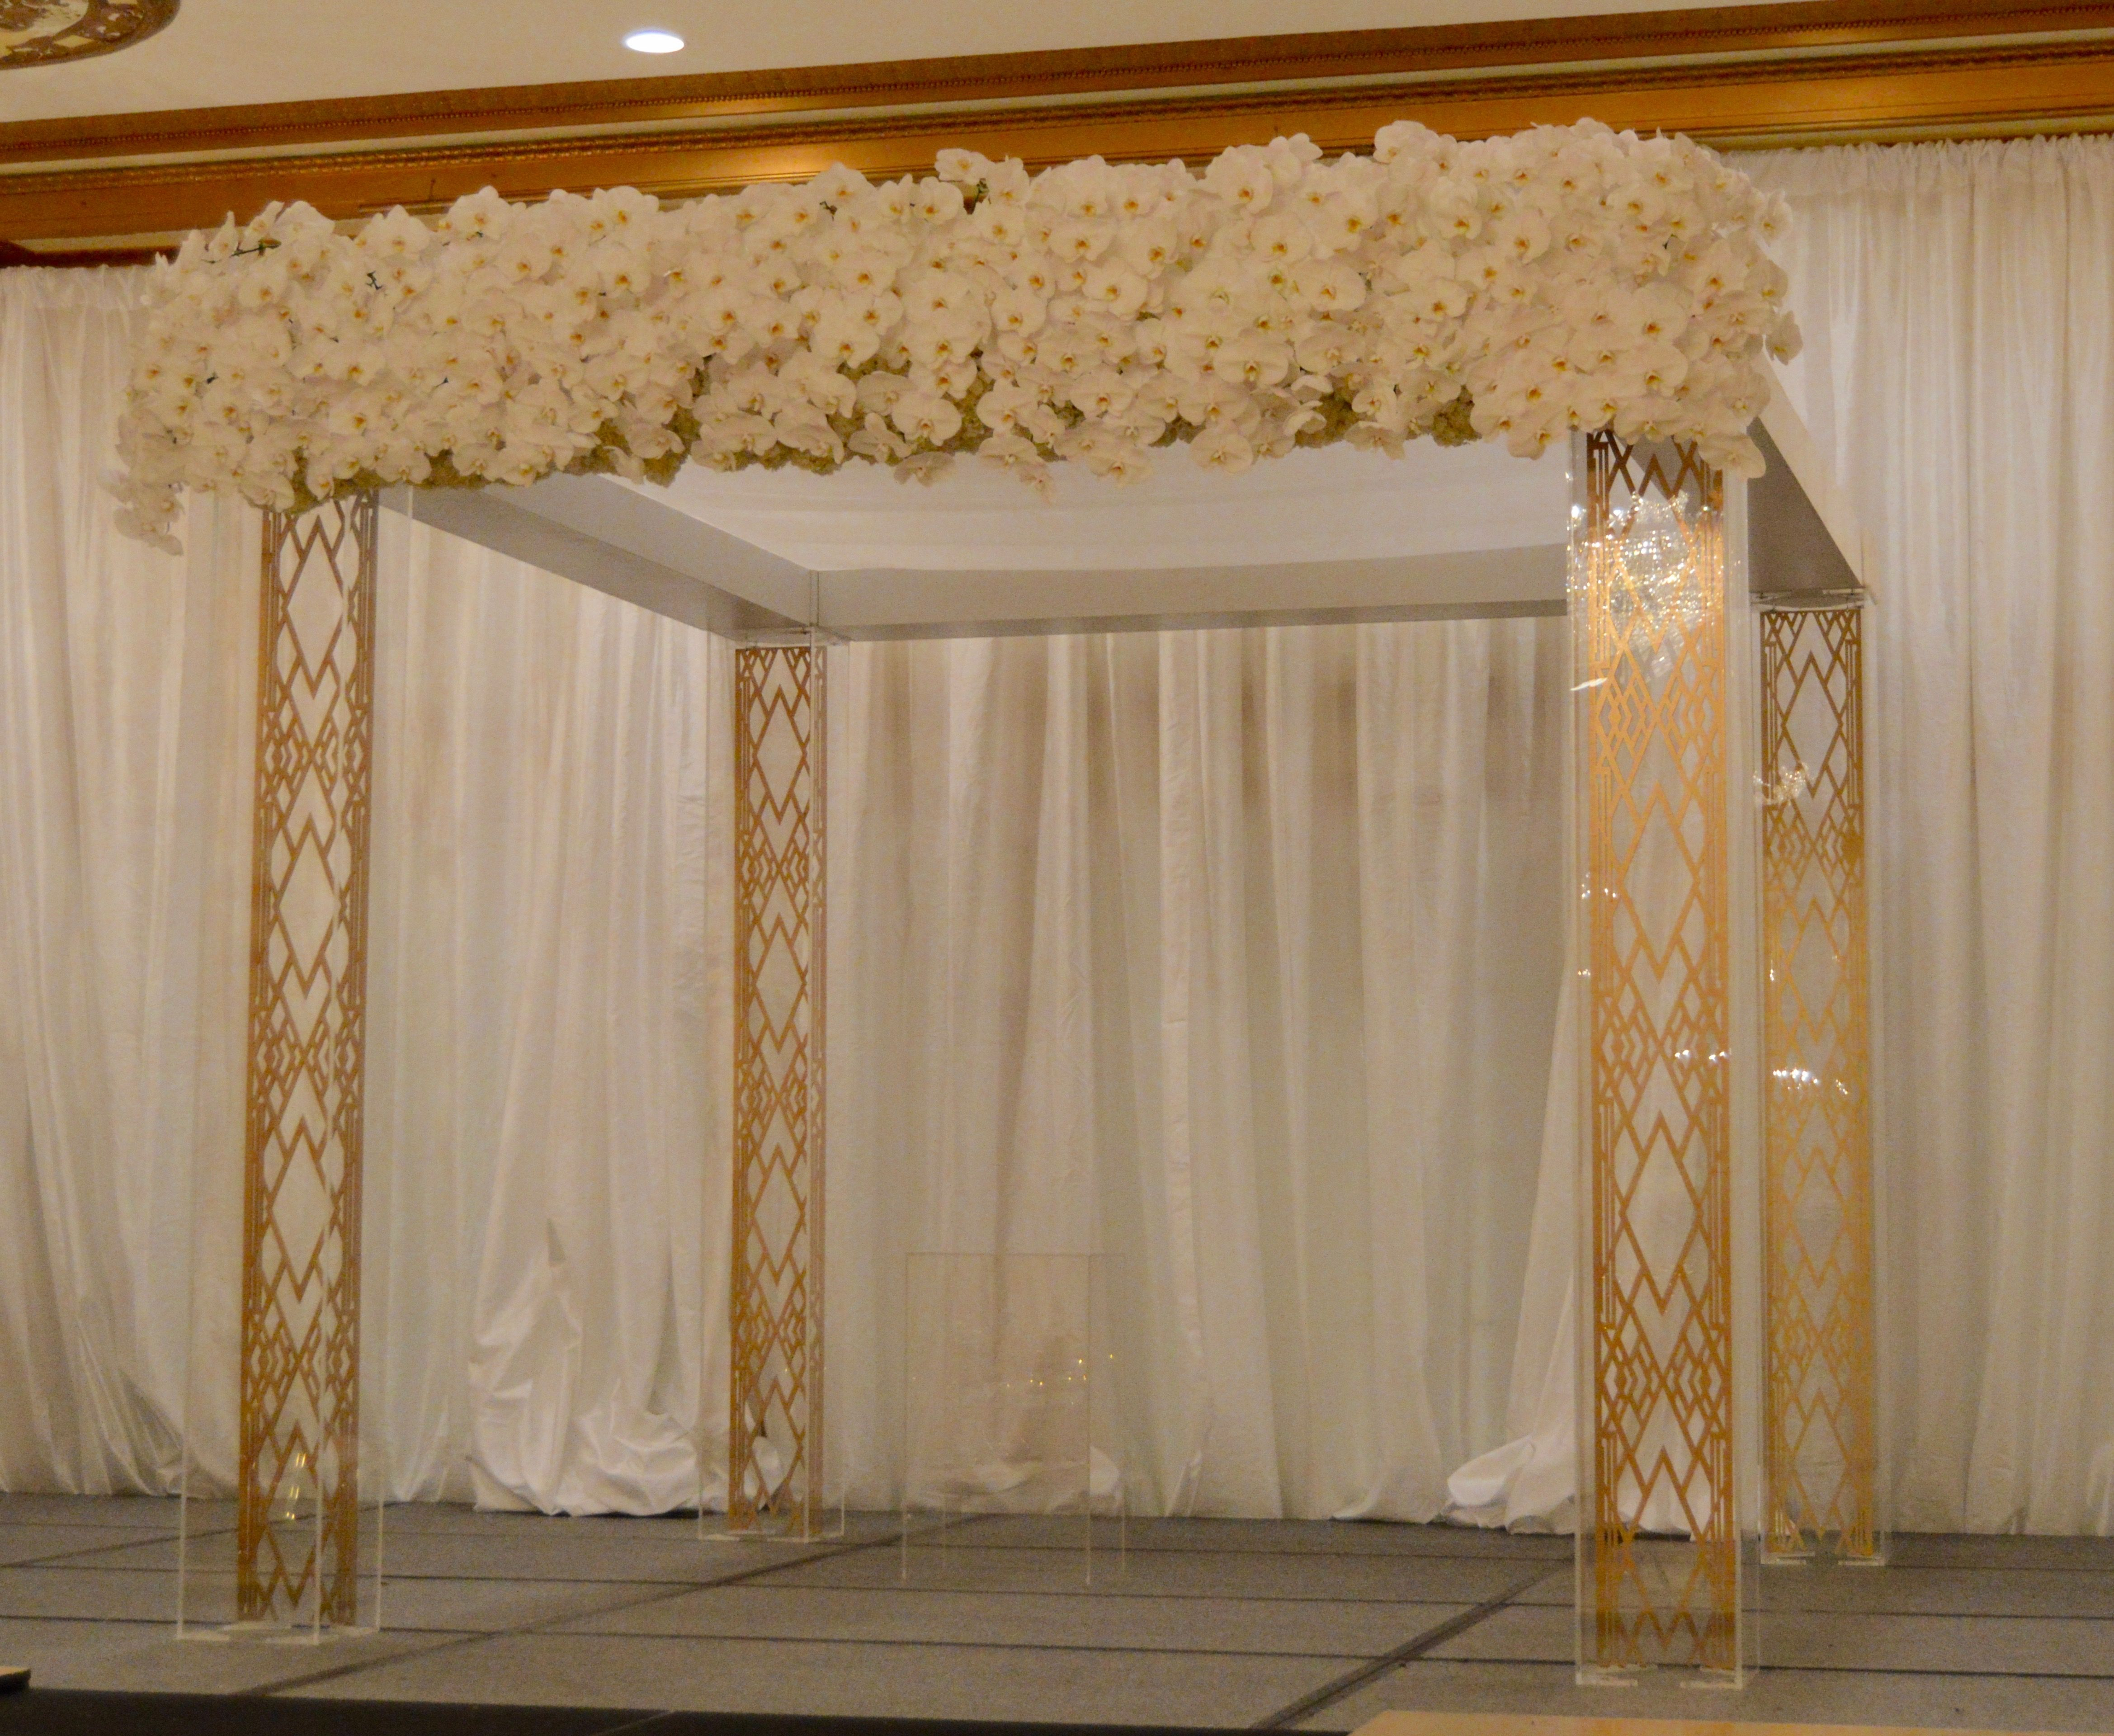 Let us customize your wedding altar! Create a one of a kind experience with our design team!